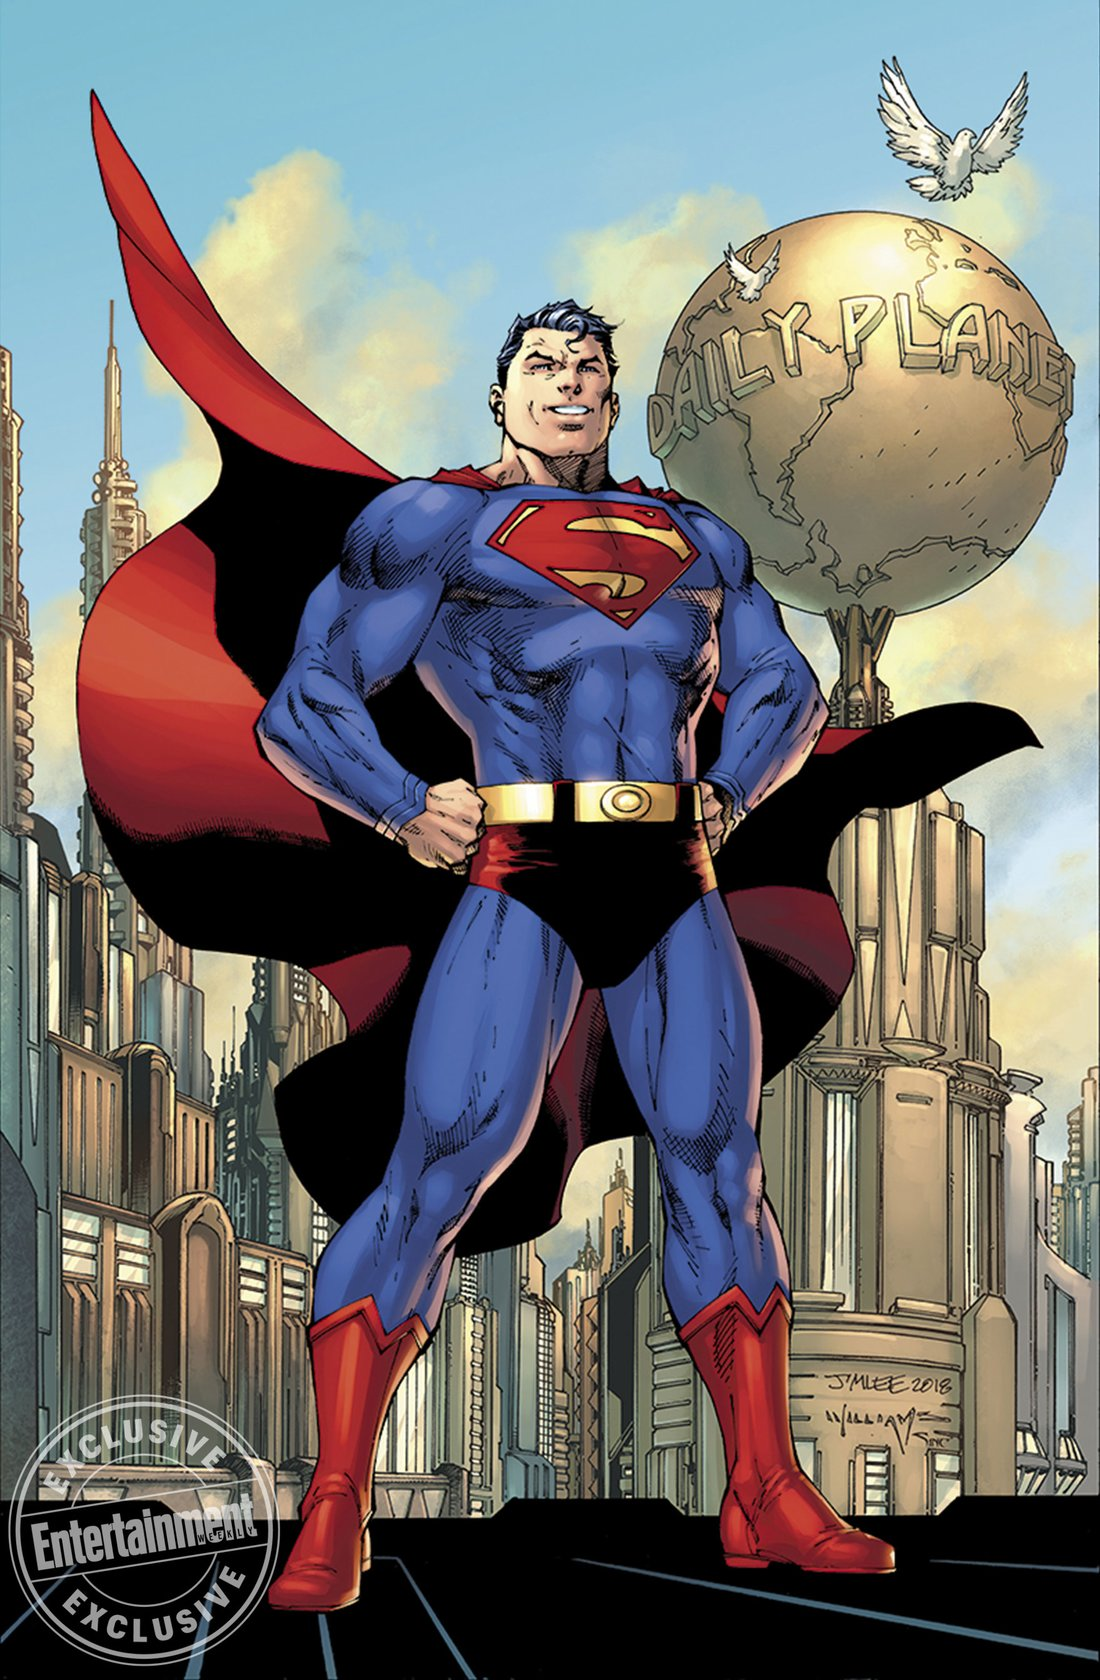 A cueca do Superman sempre é assunto - Action Comics #1000 - Jim Lee